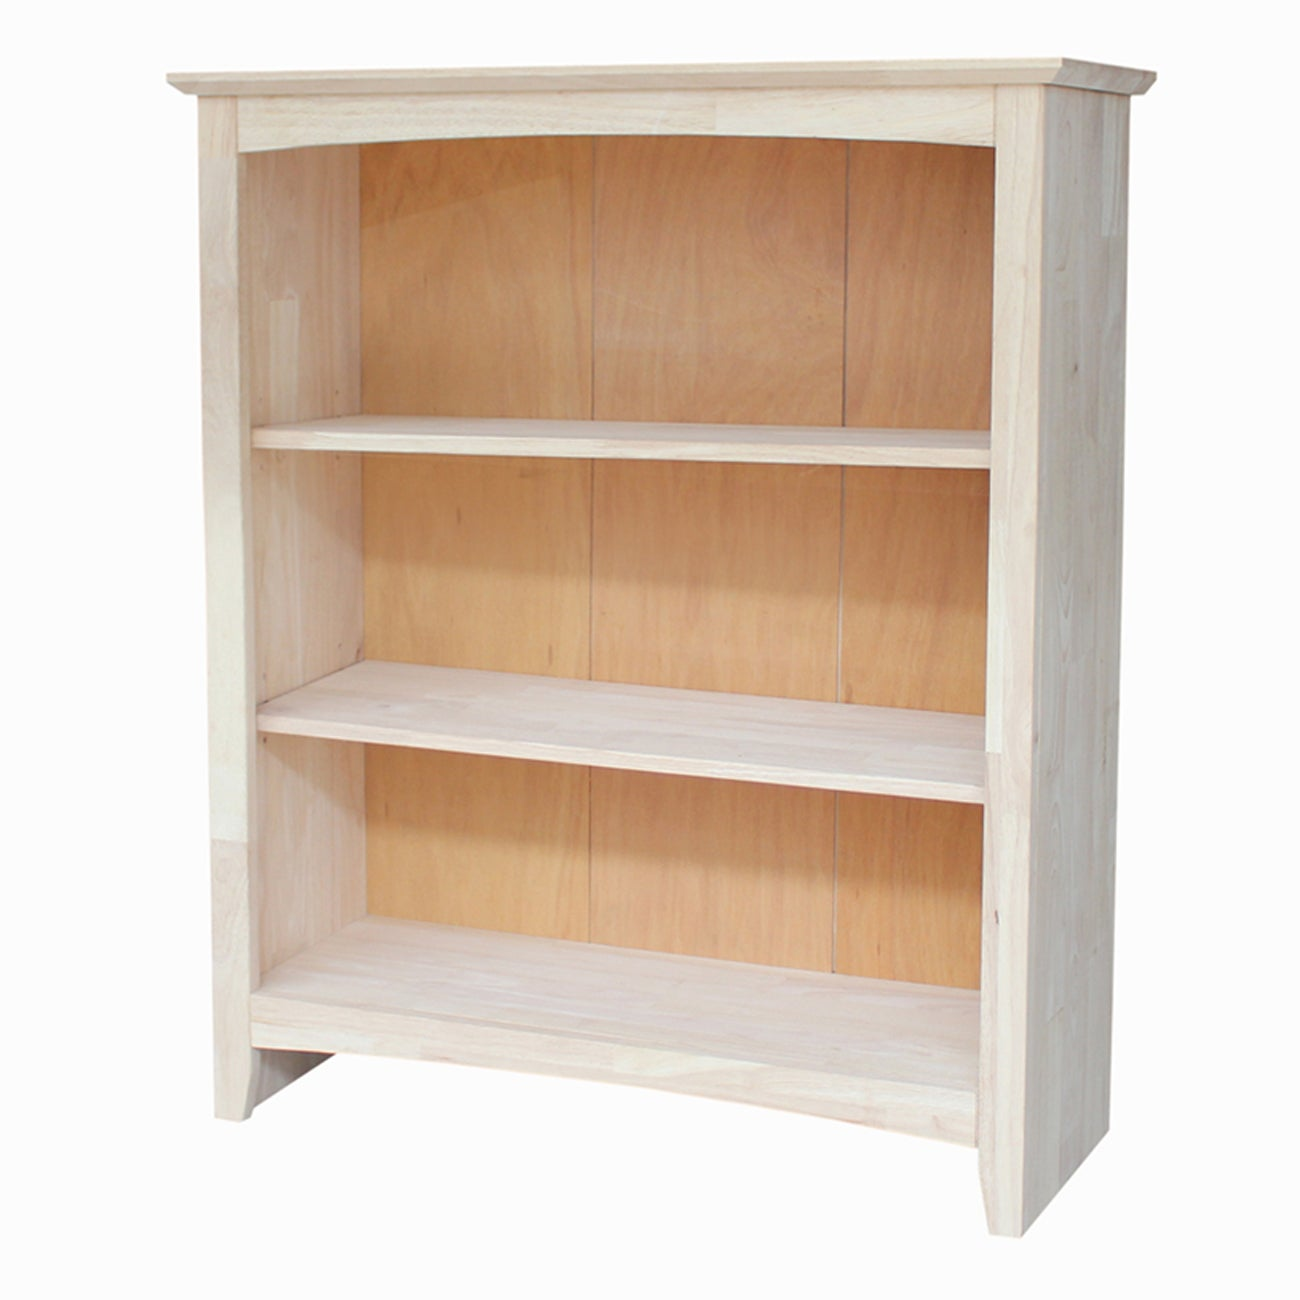 Ready To Finish 36 Inch Shaker Bookcase Free Shipping Today 17356637